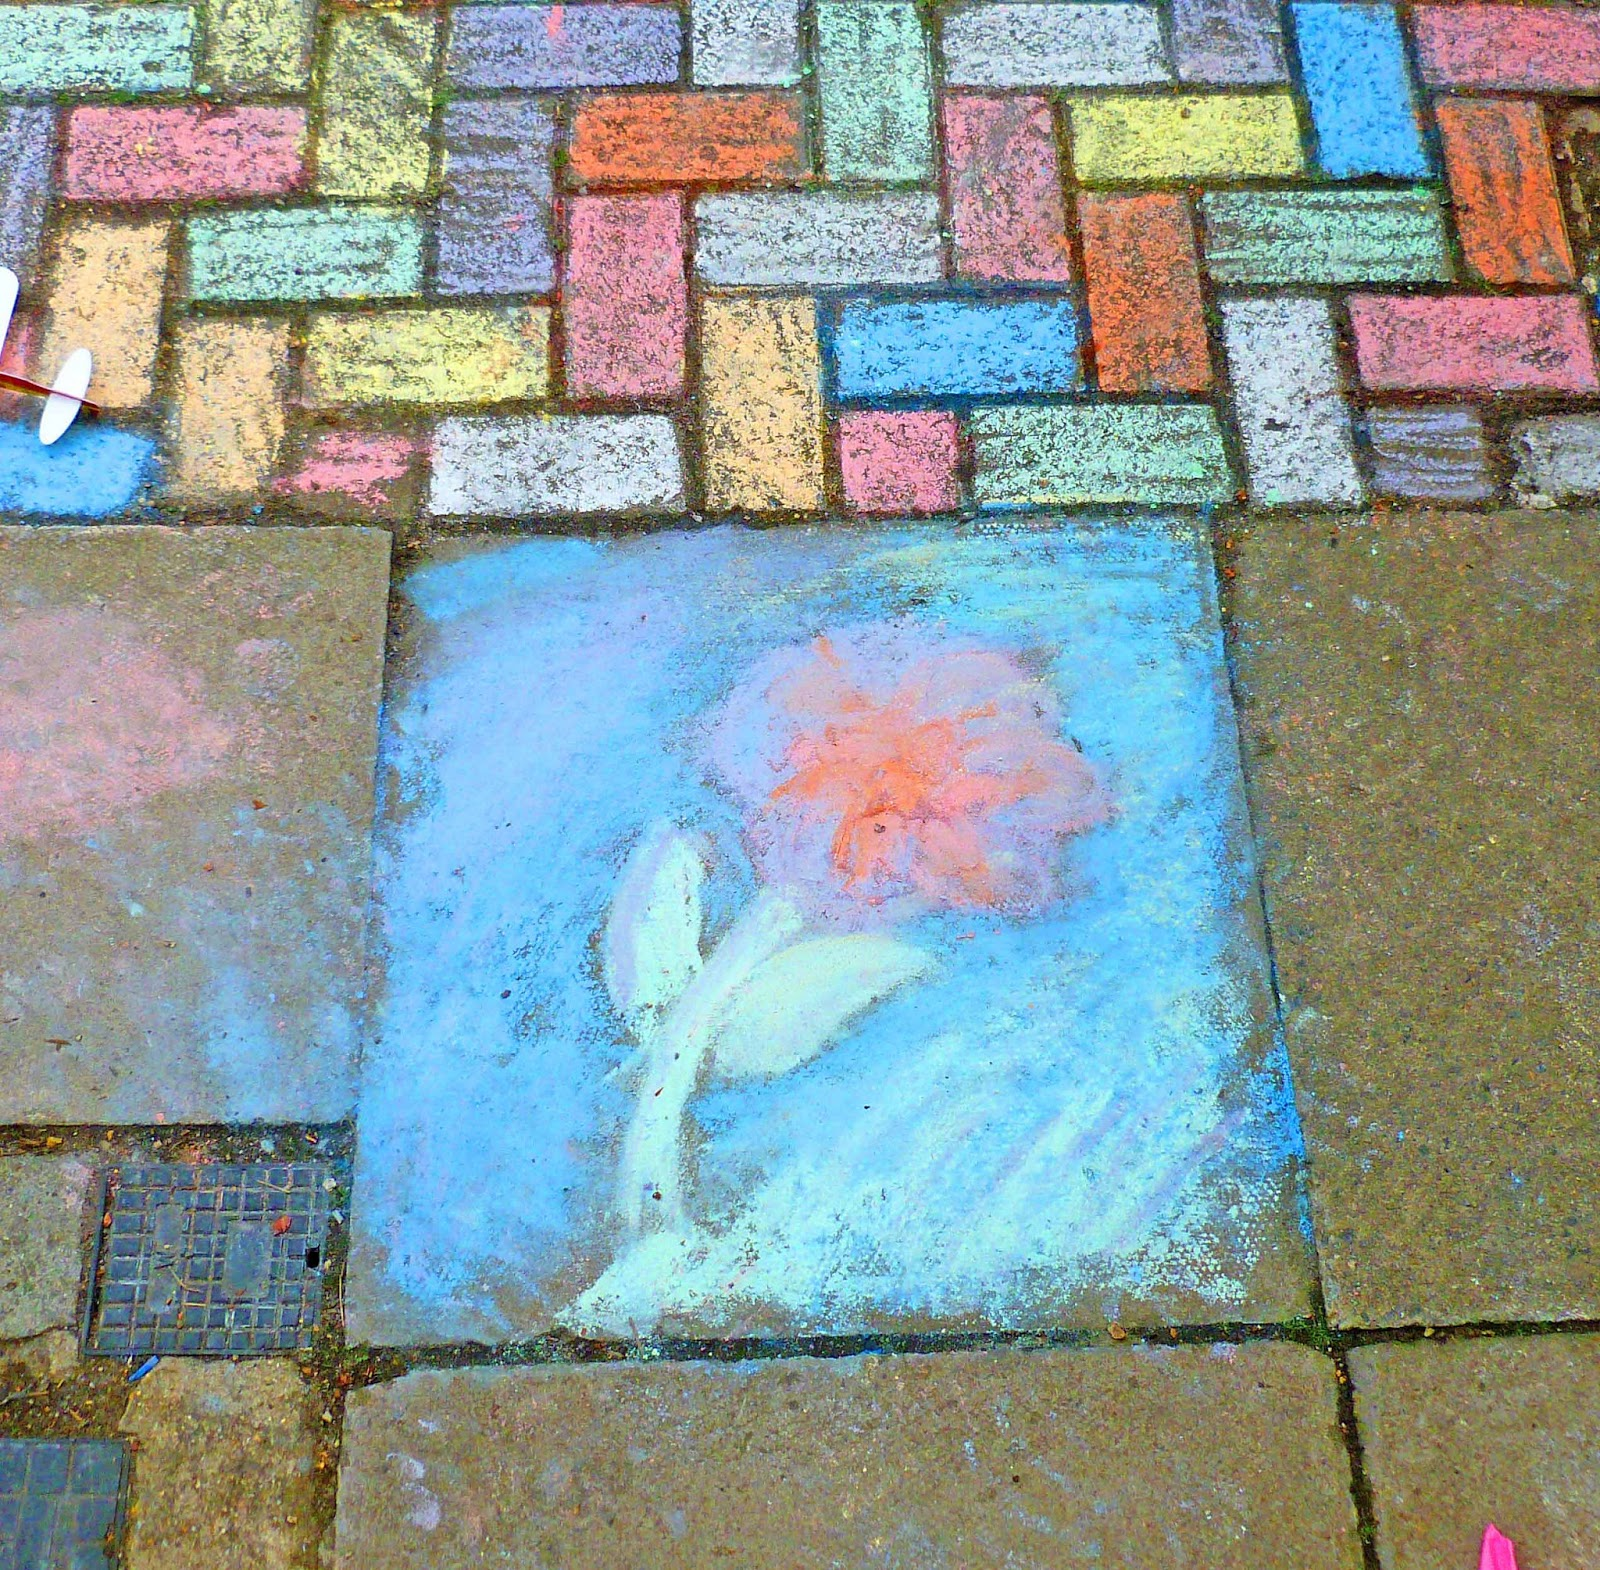 Photo of a mauve and coral flower chalked onto a pavement